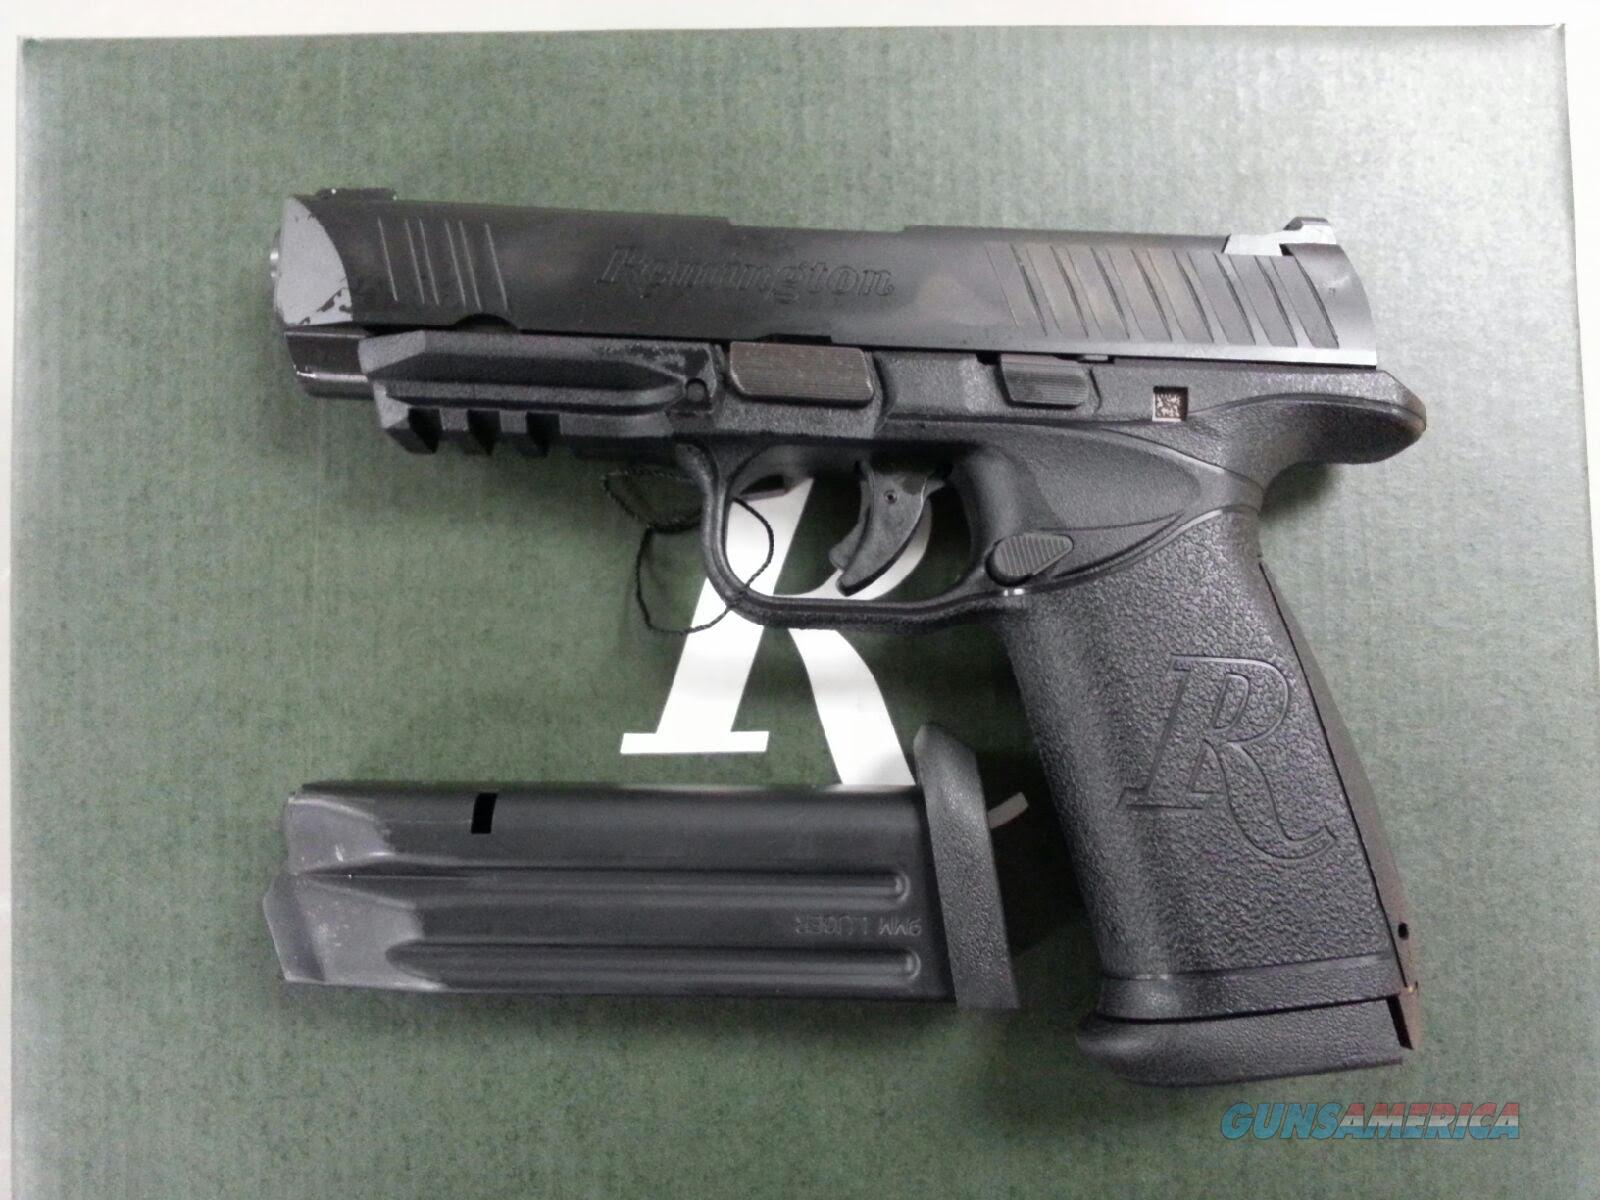 Remington Arms RP9 9mm +P Pistol  Guns > Pistols > Remington Pistols - Modern > RP9